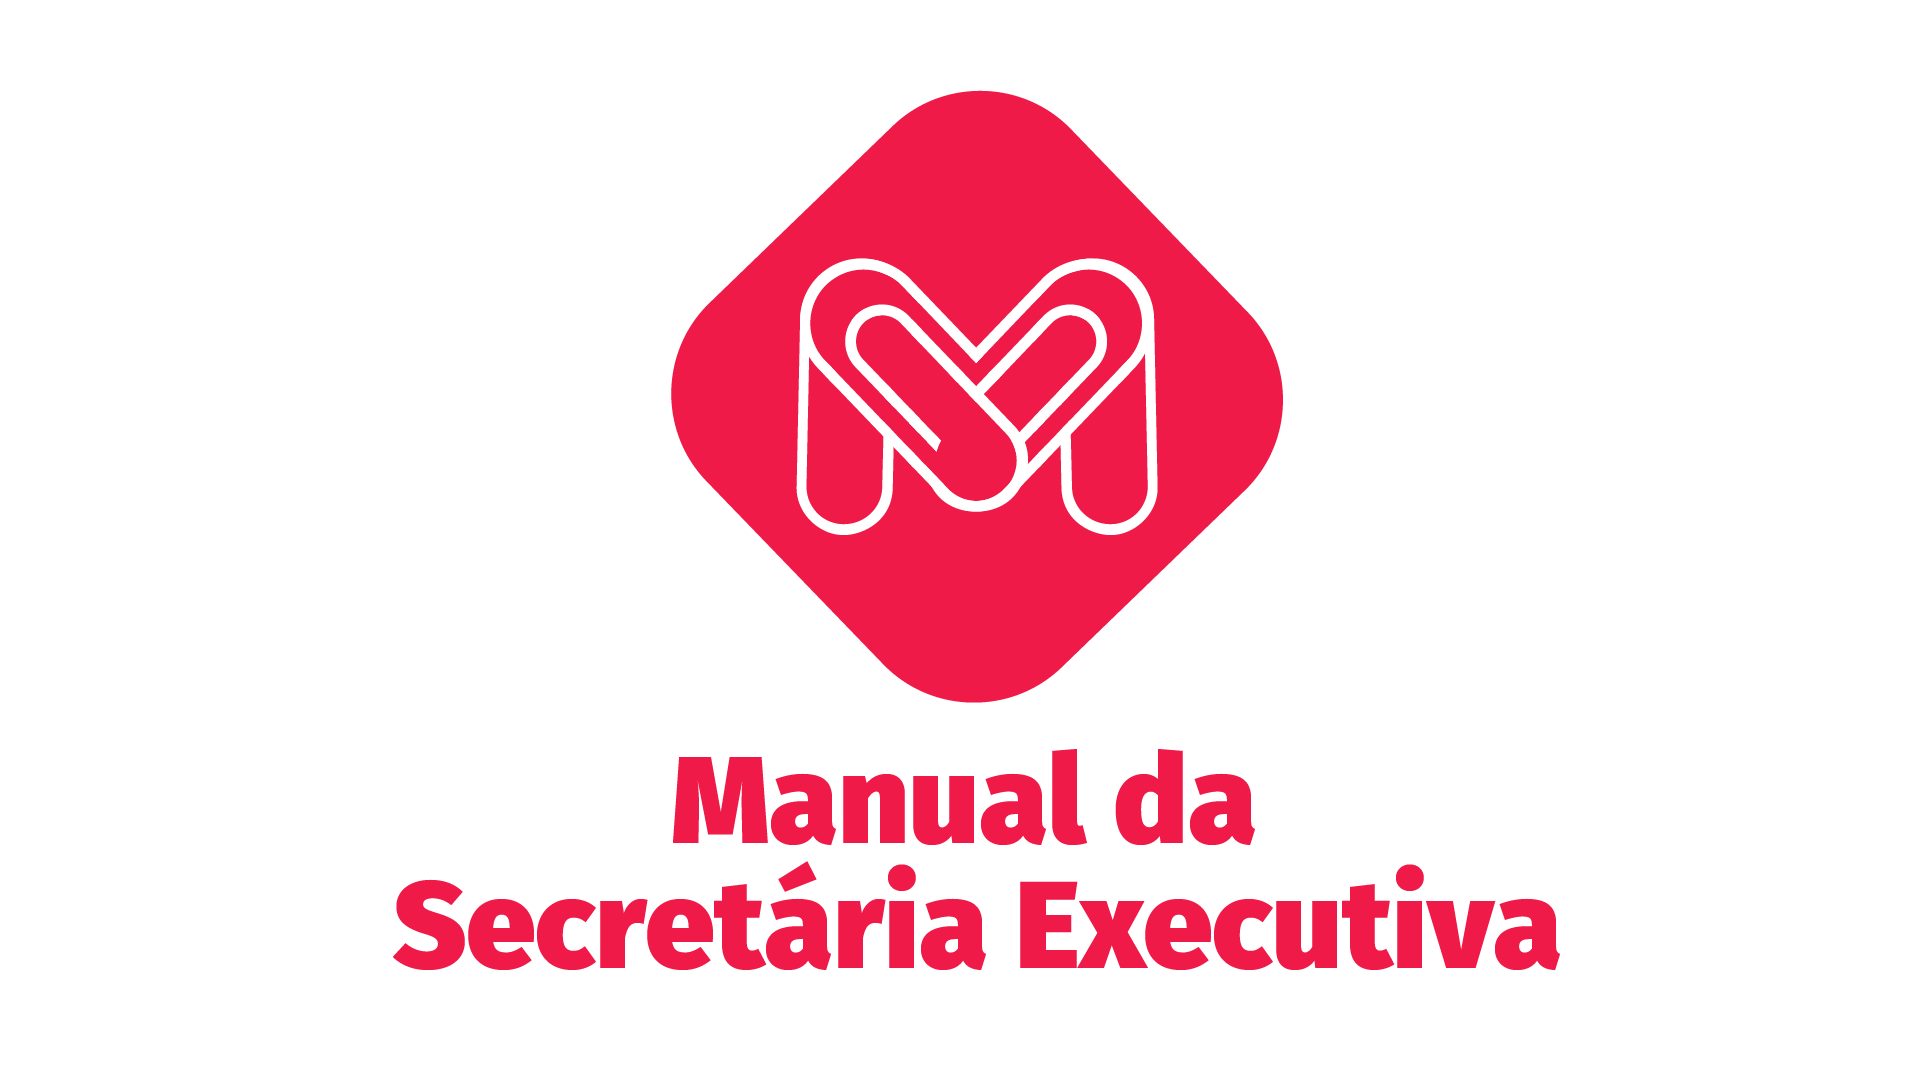 logo manual da secretaria